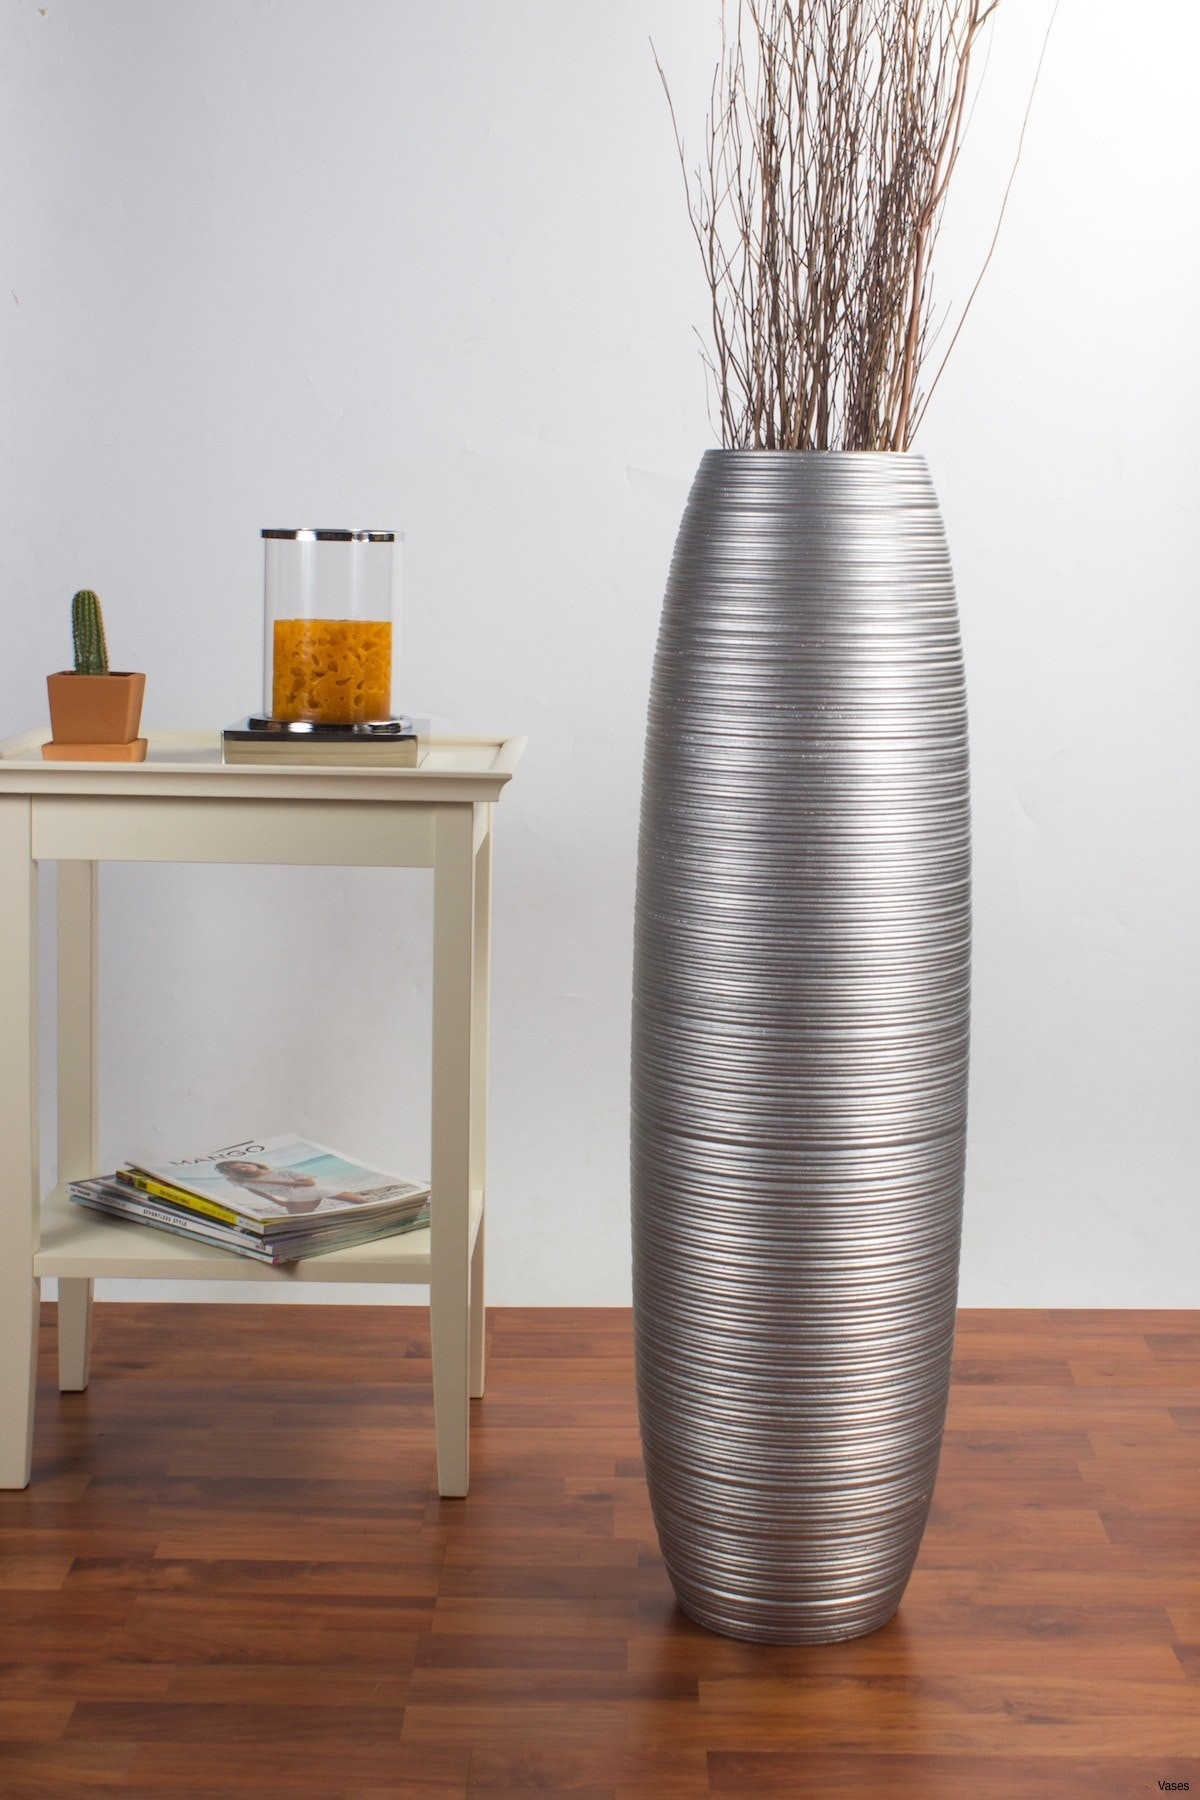 Decorative Ceramic Vases Large Of Large Wood Floor Vase Collection Vases Flower Floor Vase with within Large Wood Floor Vase Collection Decorating Ideas for Vases Luxury Tall Floor Vase Decoration Ideas Of